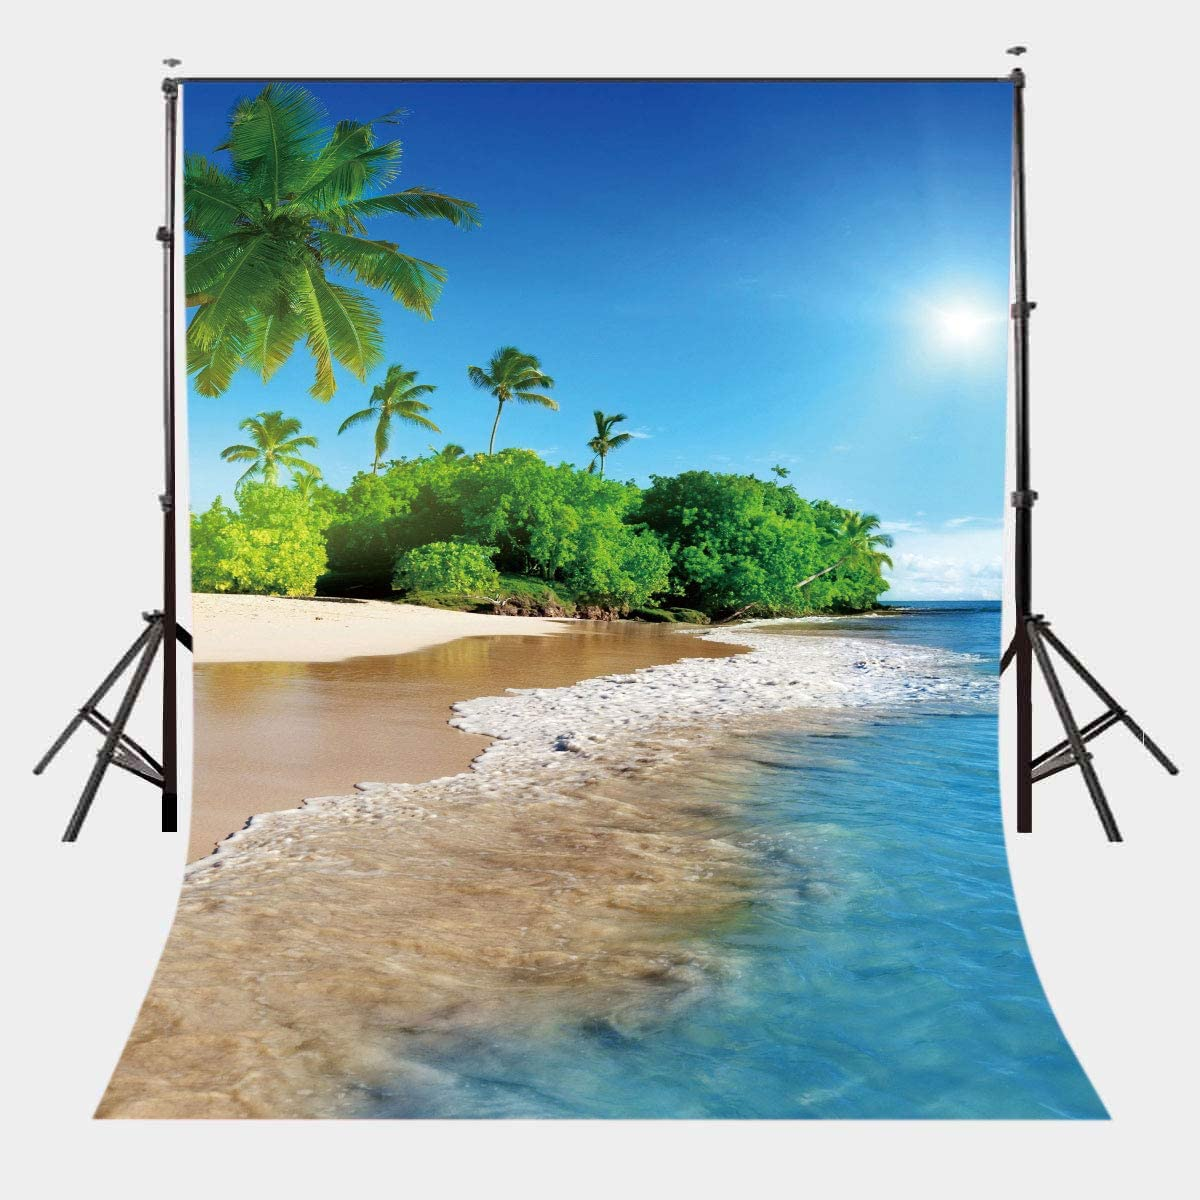 LELEZ Summer Beach Backdrop for Photography 5x7ft Vinyl Blue Ocean Background Palm Tree Photo Backdrop Sand Beach Vacation Theme Party Decoration YouTube Studio Props SPGE477